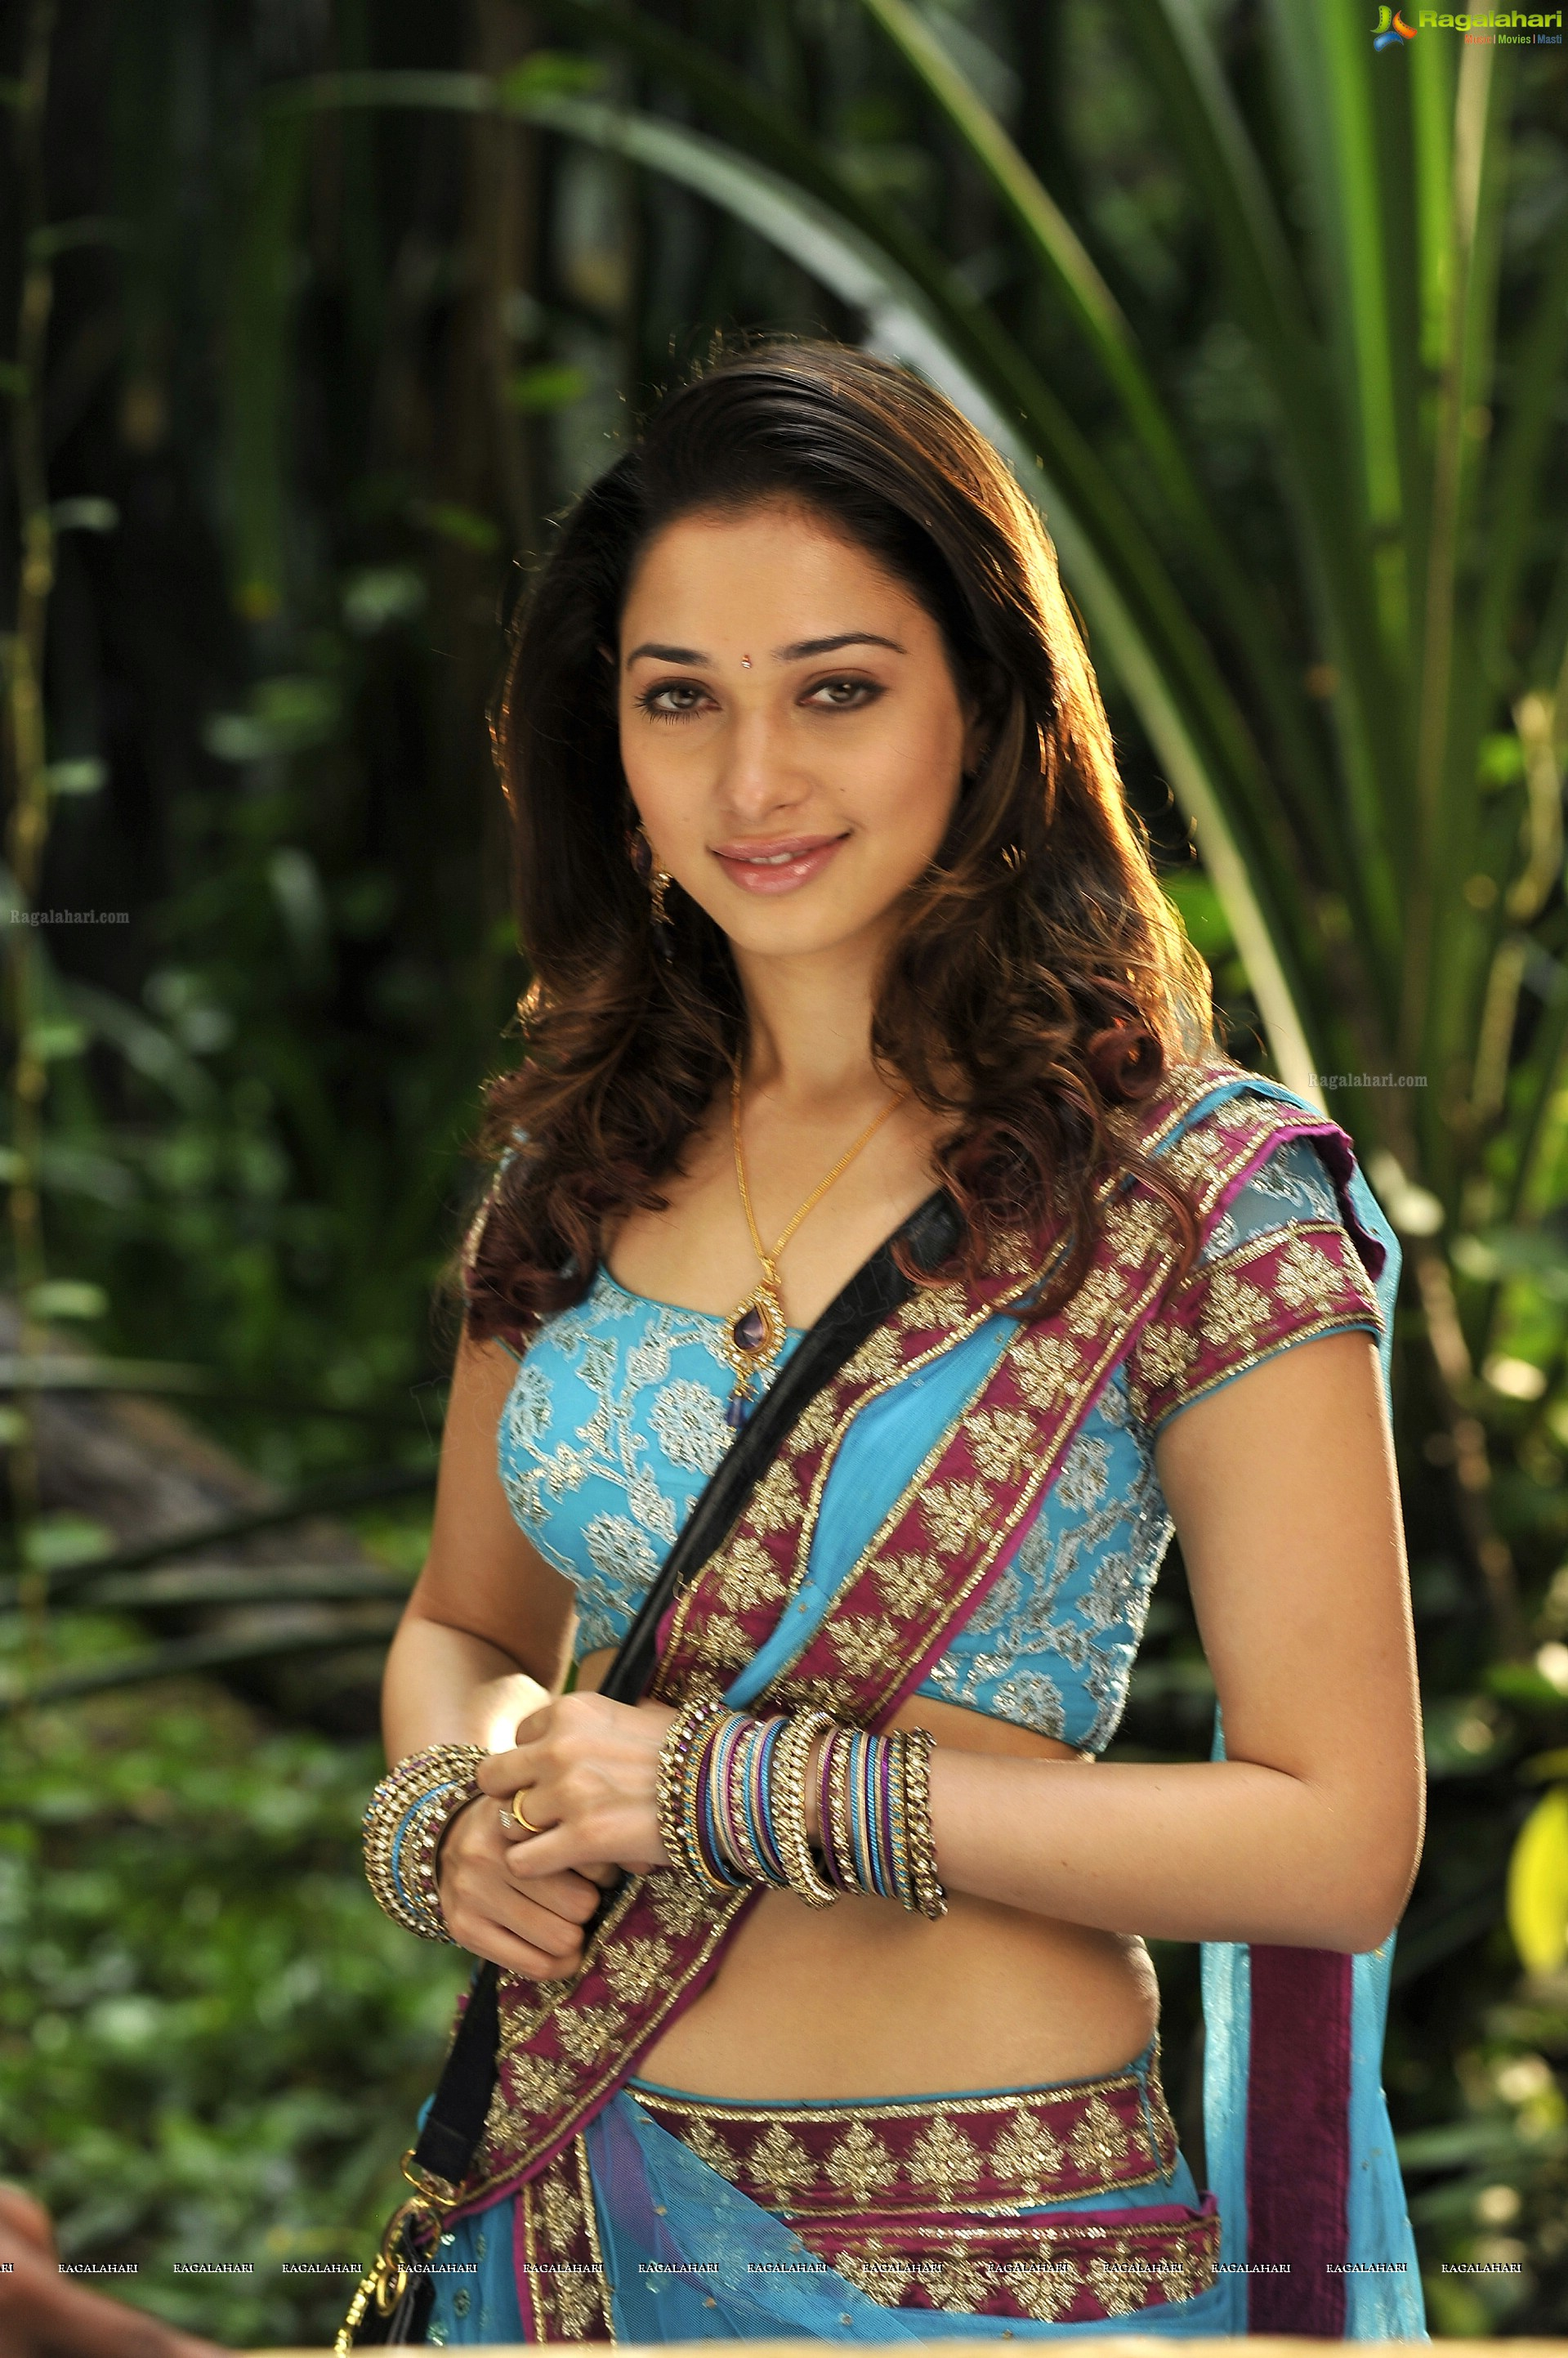 tamanna (hd) image 16 | tollywood actress gallery,telugu movie